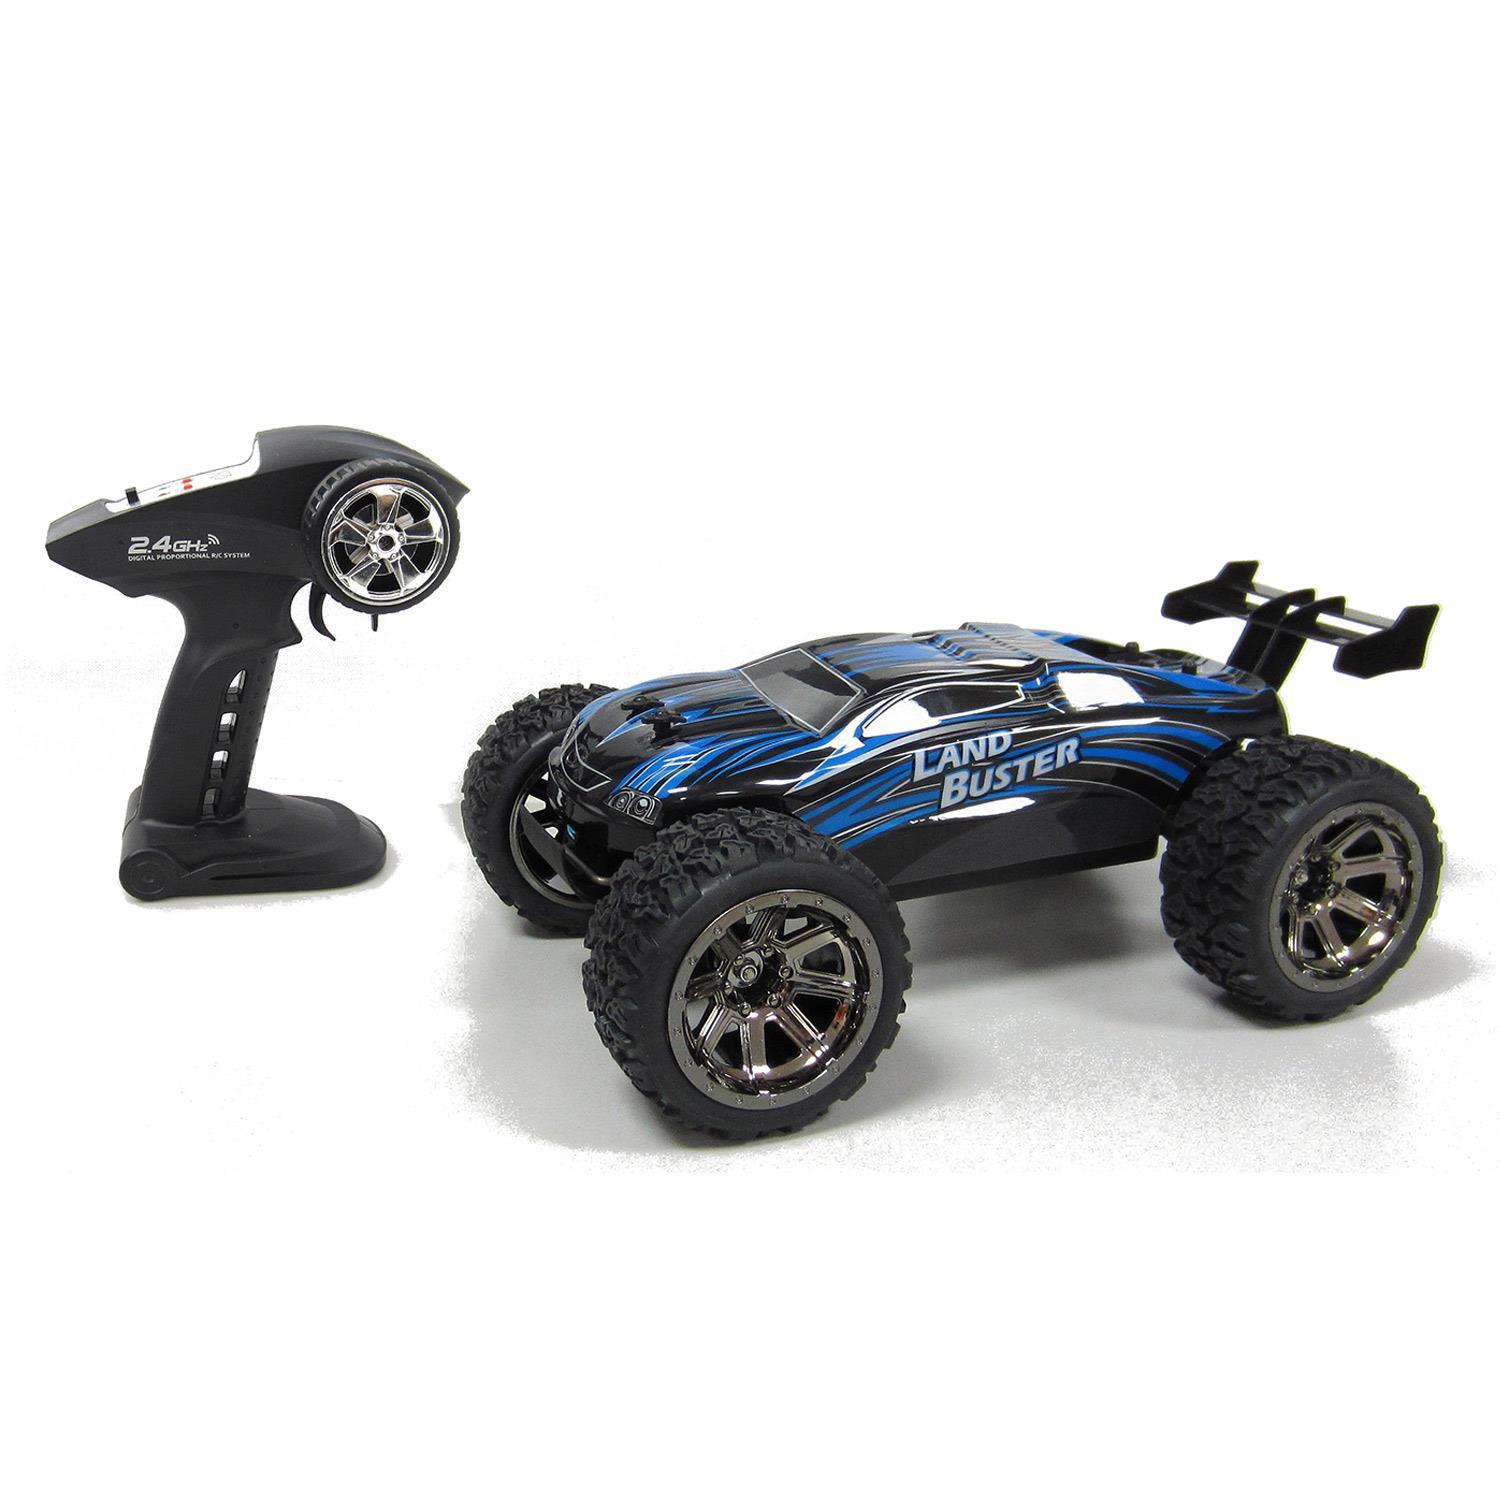 Land Buster 1:12 Monster Truck RTR